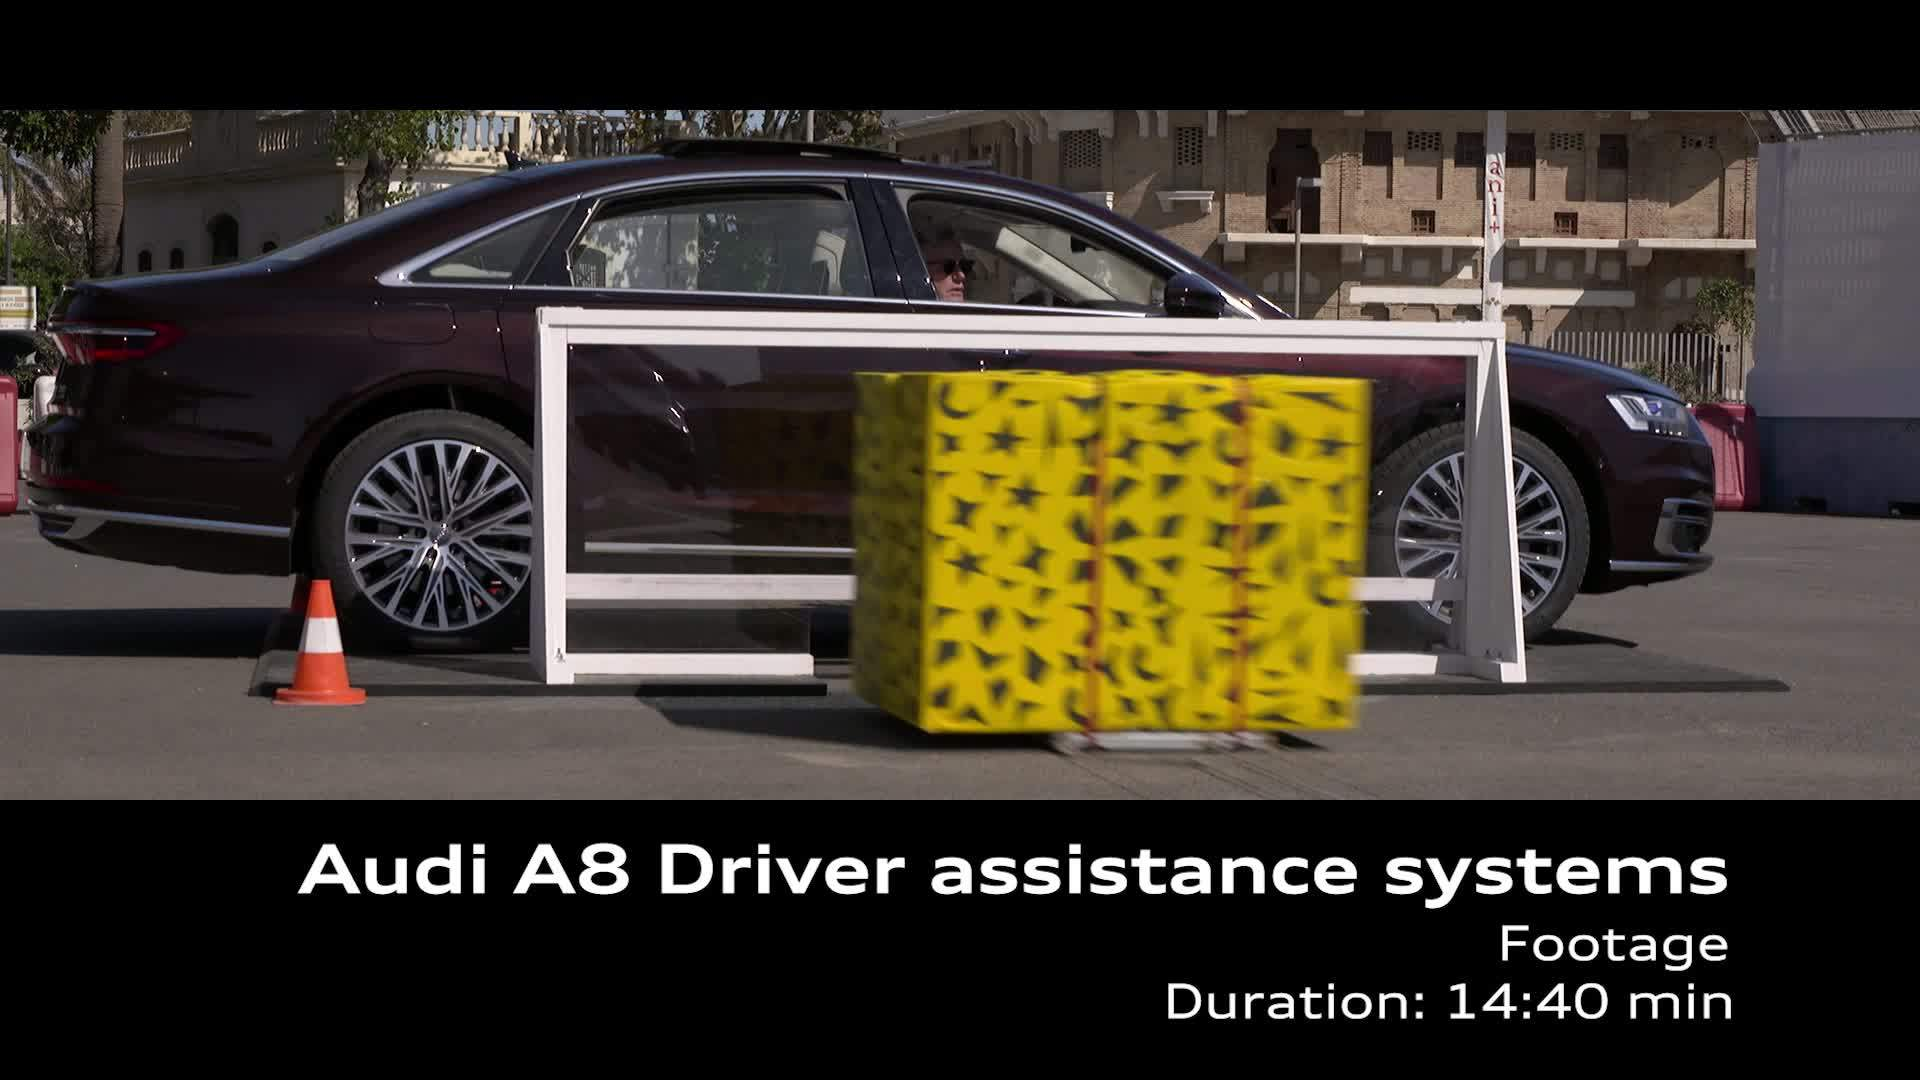 audi night vision assistant distance